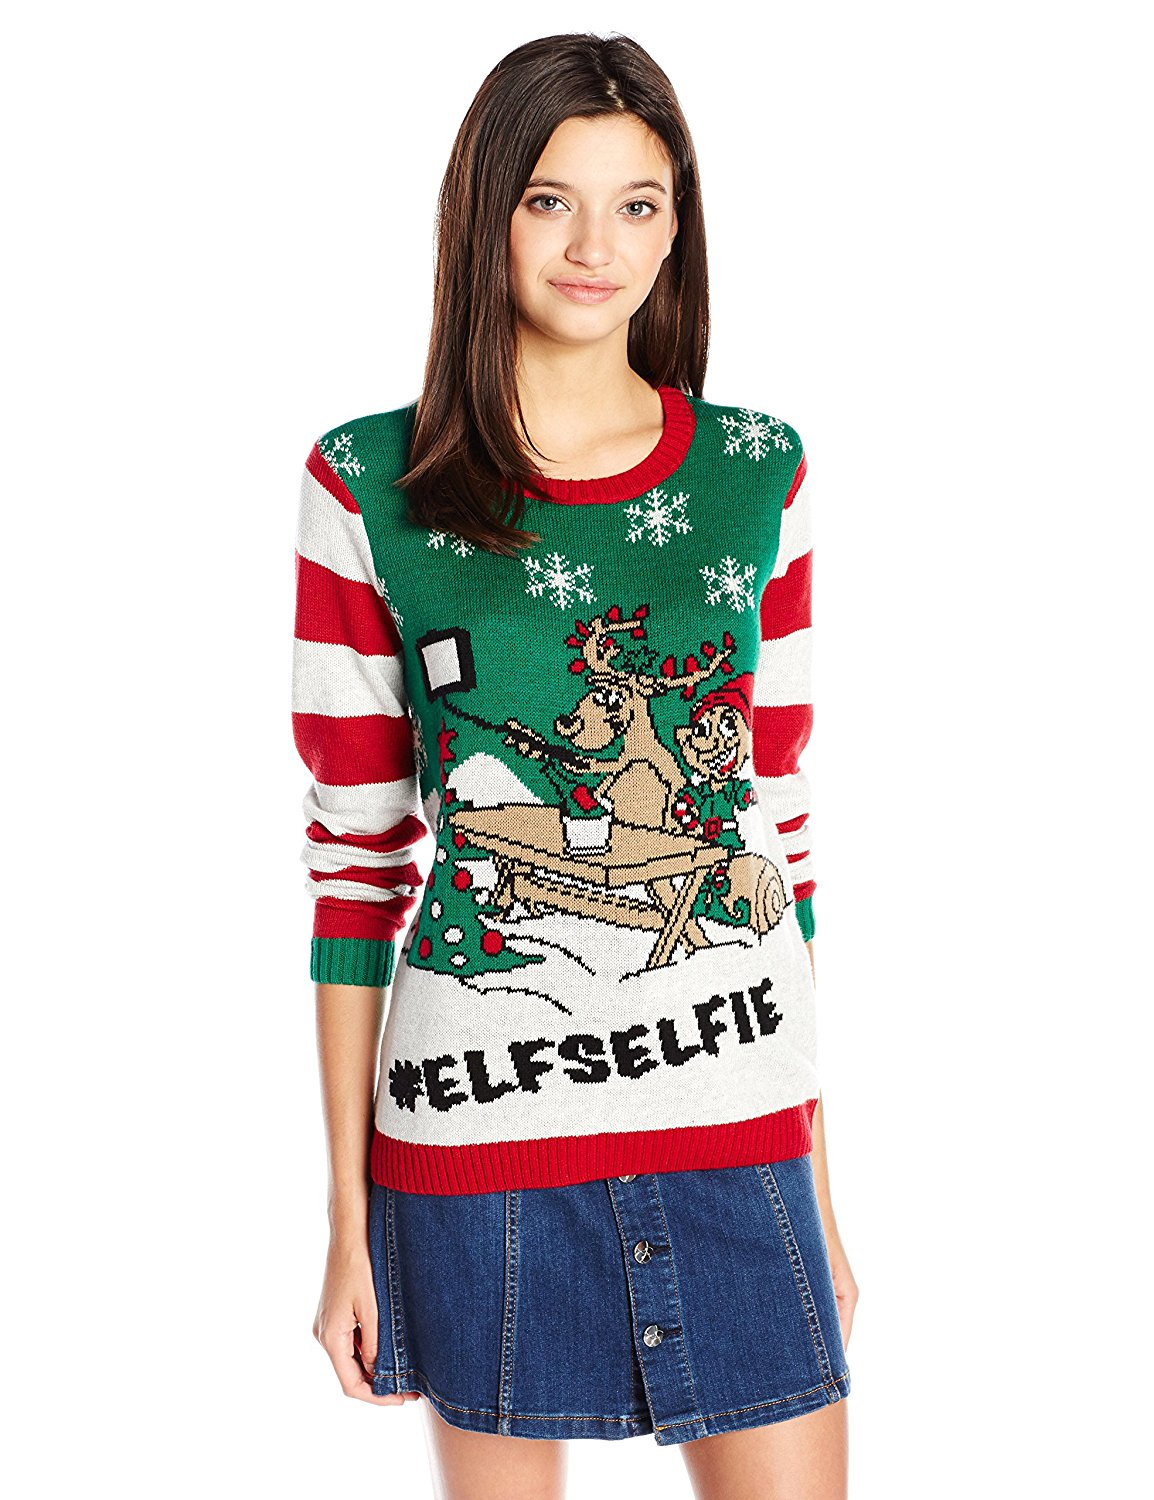 Cheap Elf Sweater, find Elf Sweater deals on line at Alibaba.com